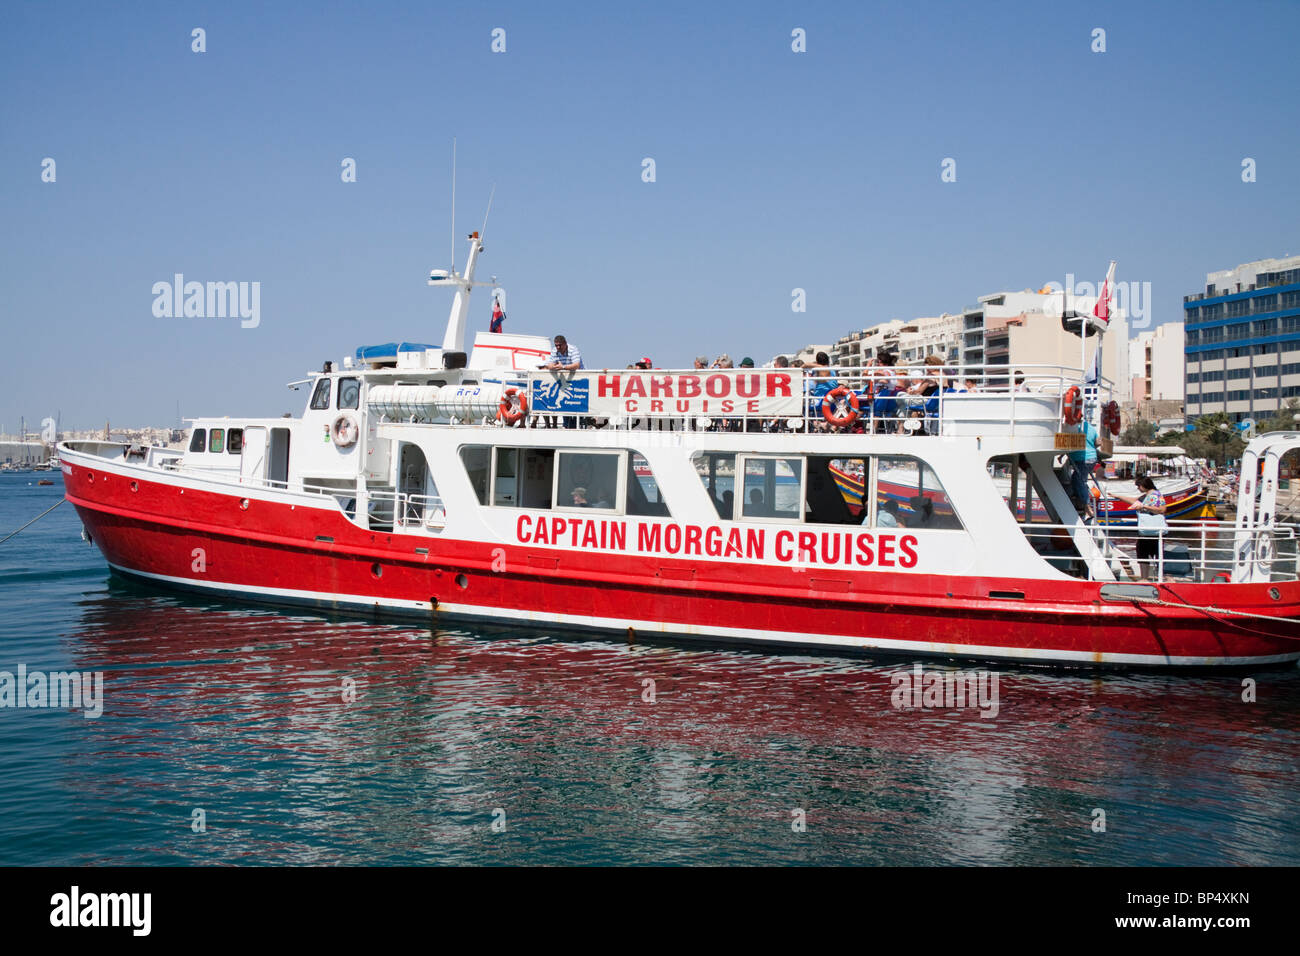 Captain Morgan Cruises on the seafront at Sliema, Malta, Europe - Stock Image